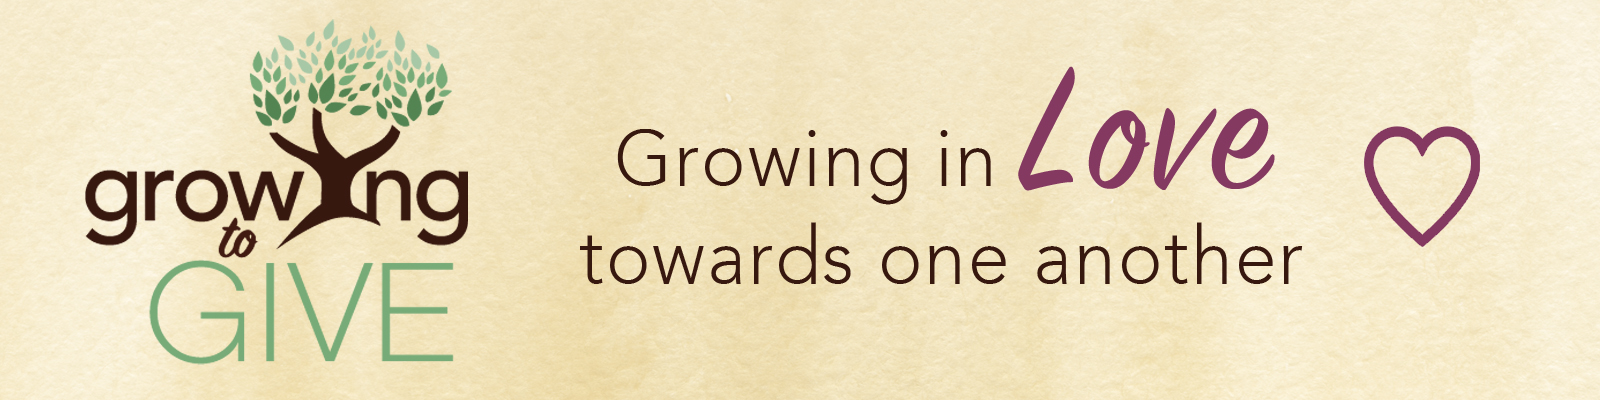 Growing to Love is our emphasis this year in our Growing to Give Capital Campaign at St John Lutheran